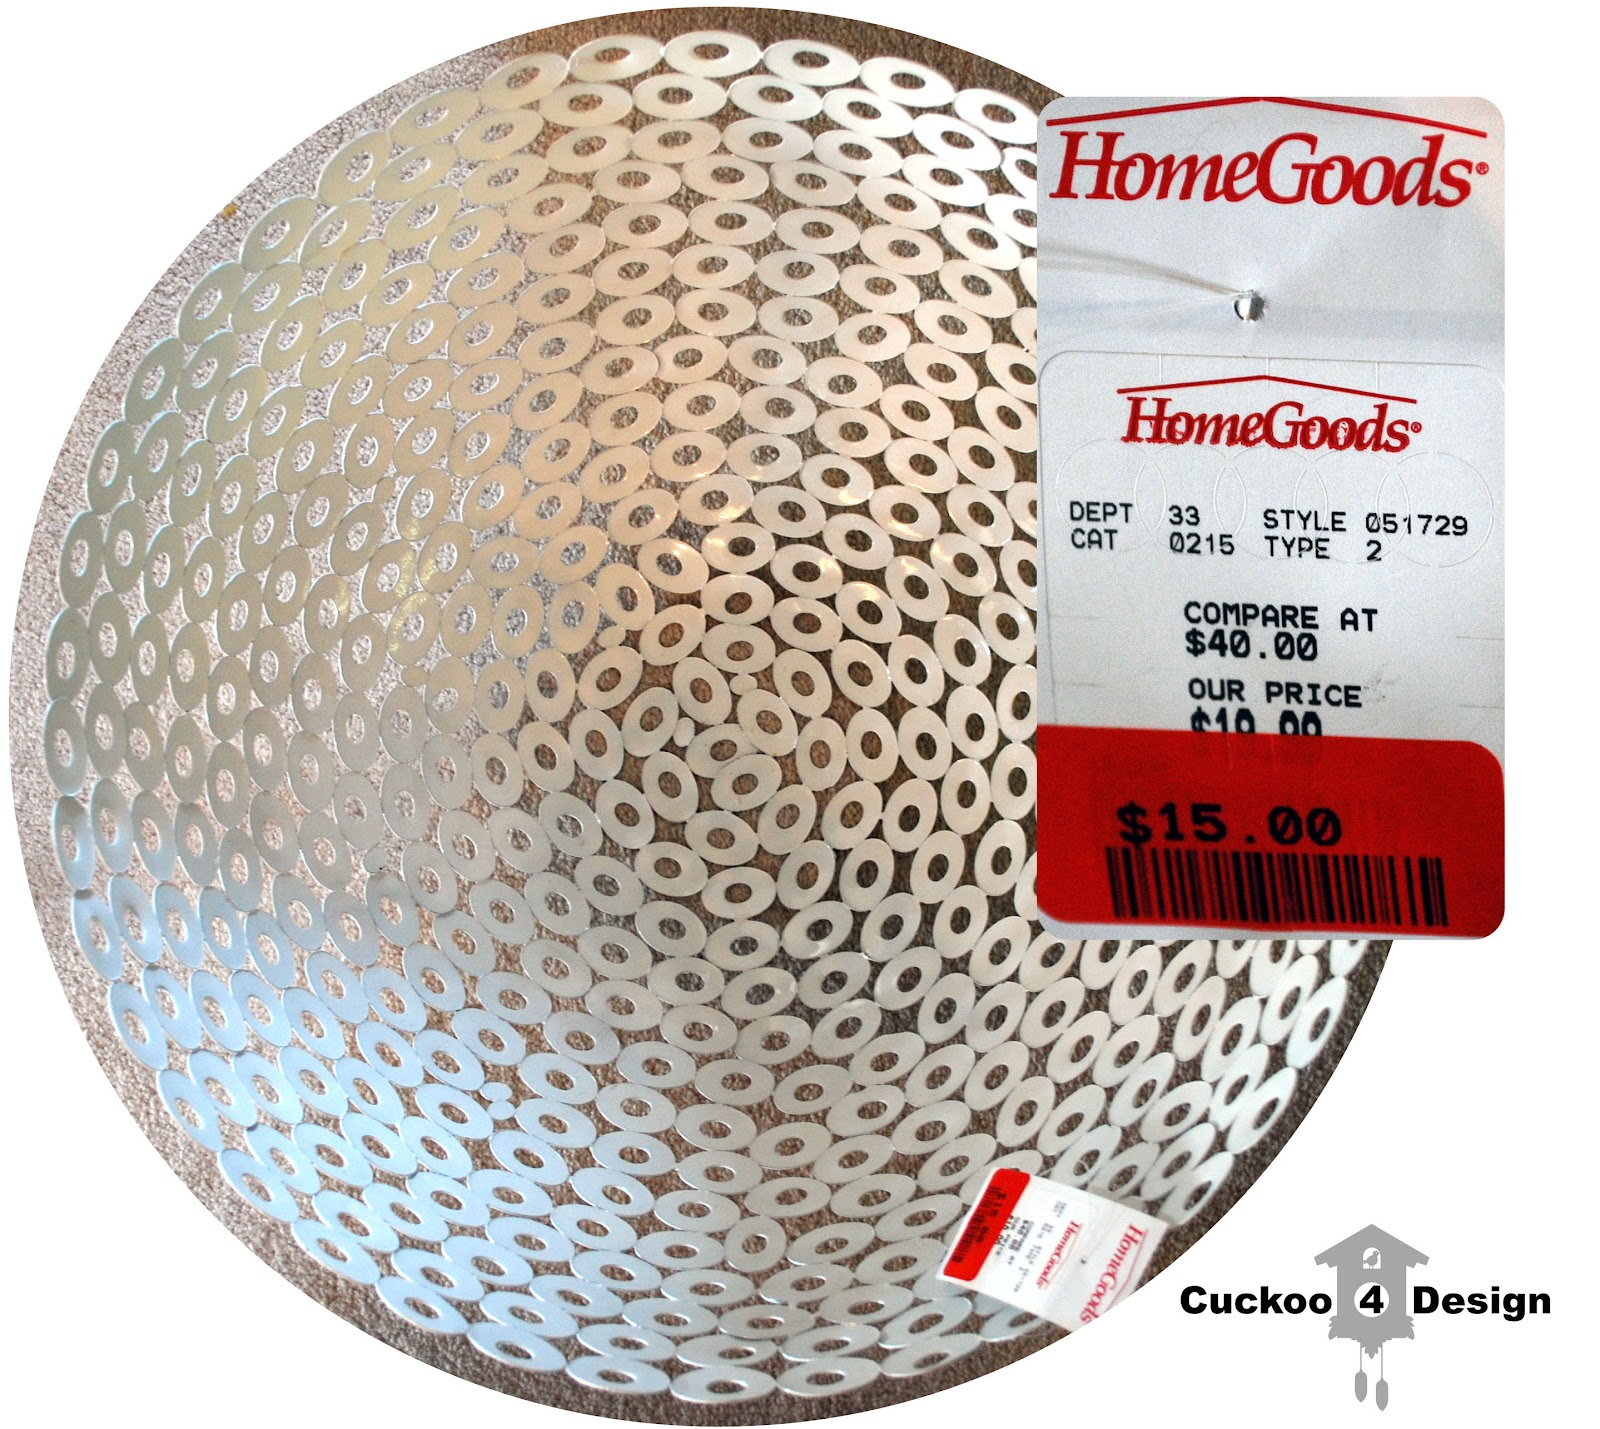 15 HomeGoods clearance bowl converted to ceiling fixture. HomeGoods clearance bowl as DIY ceiling fixture   Cuckoo4Design